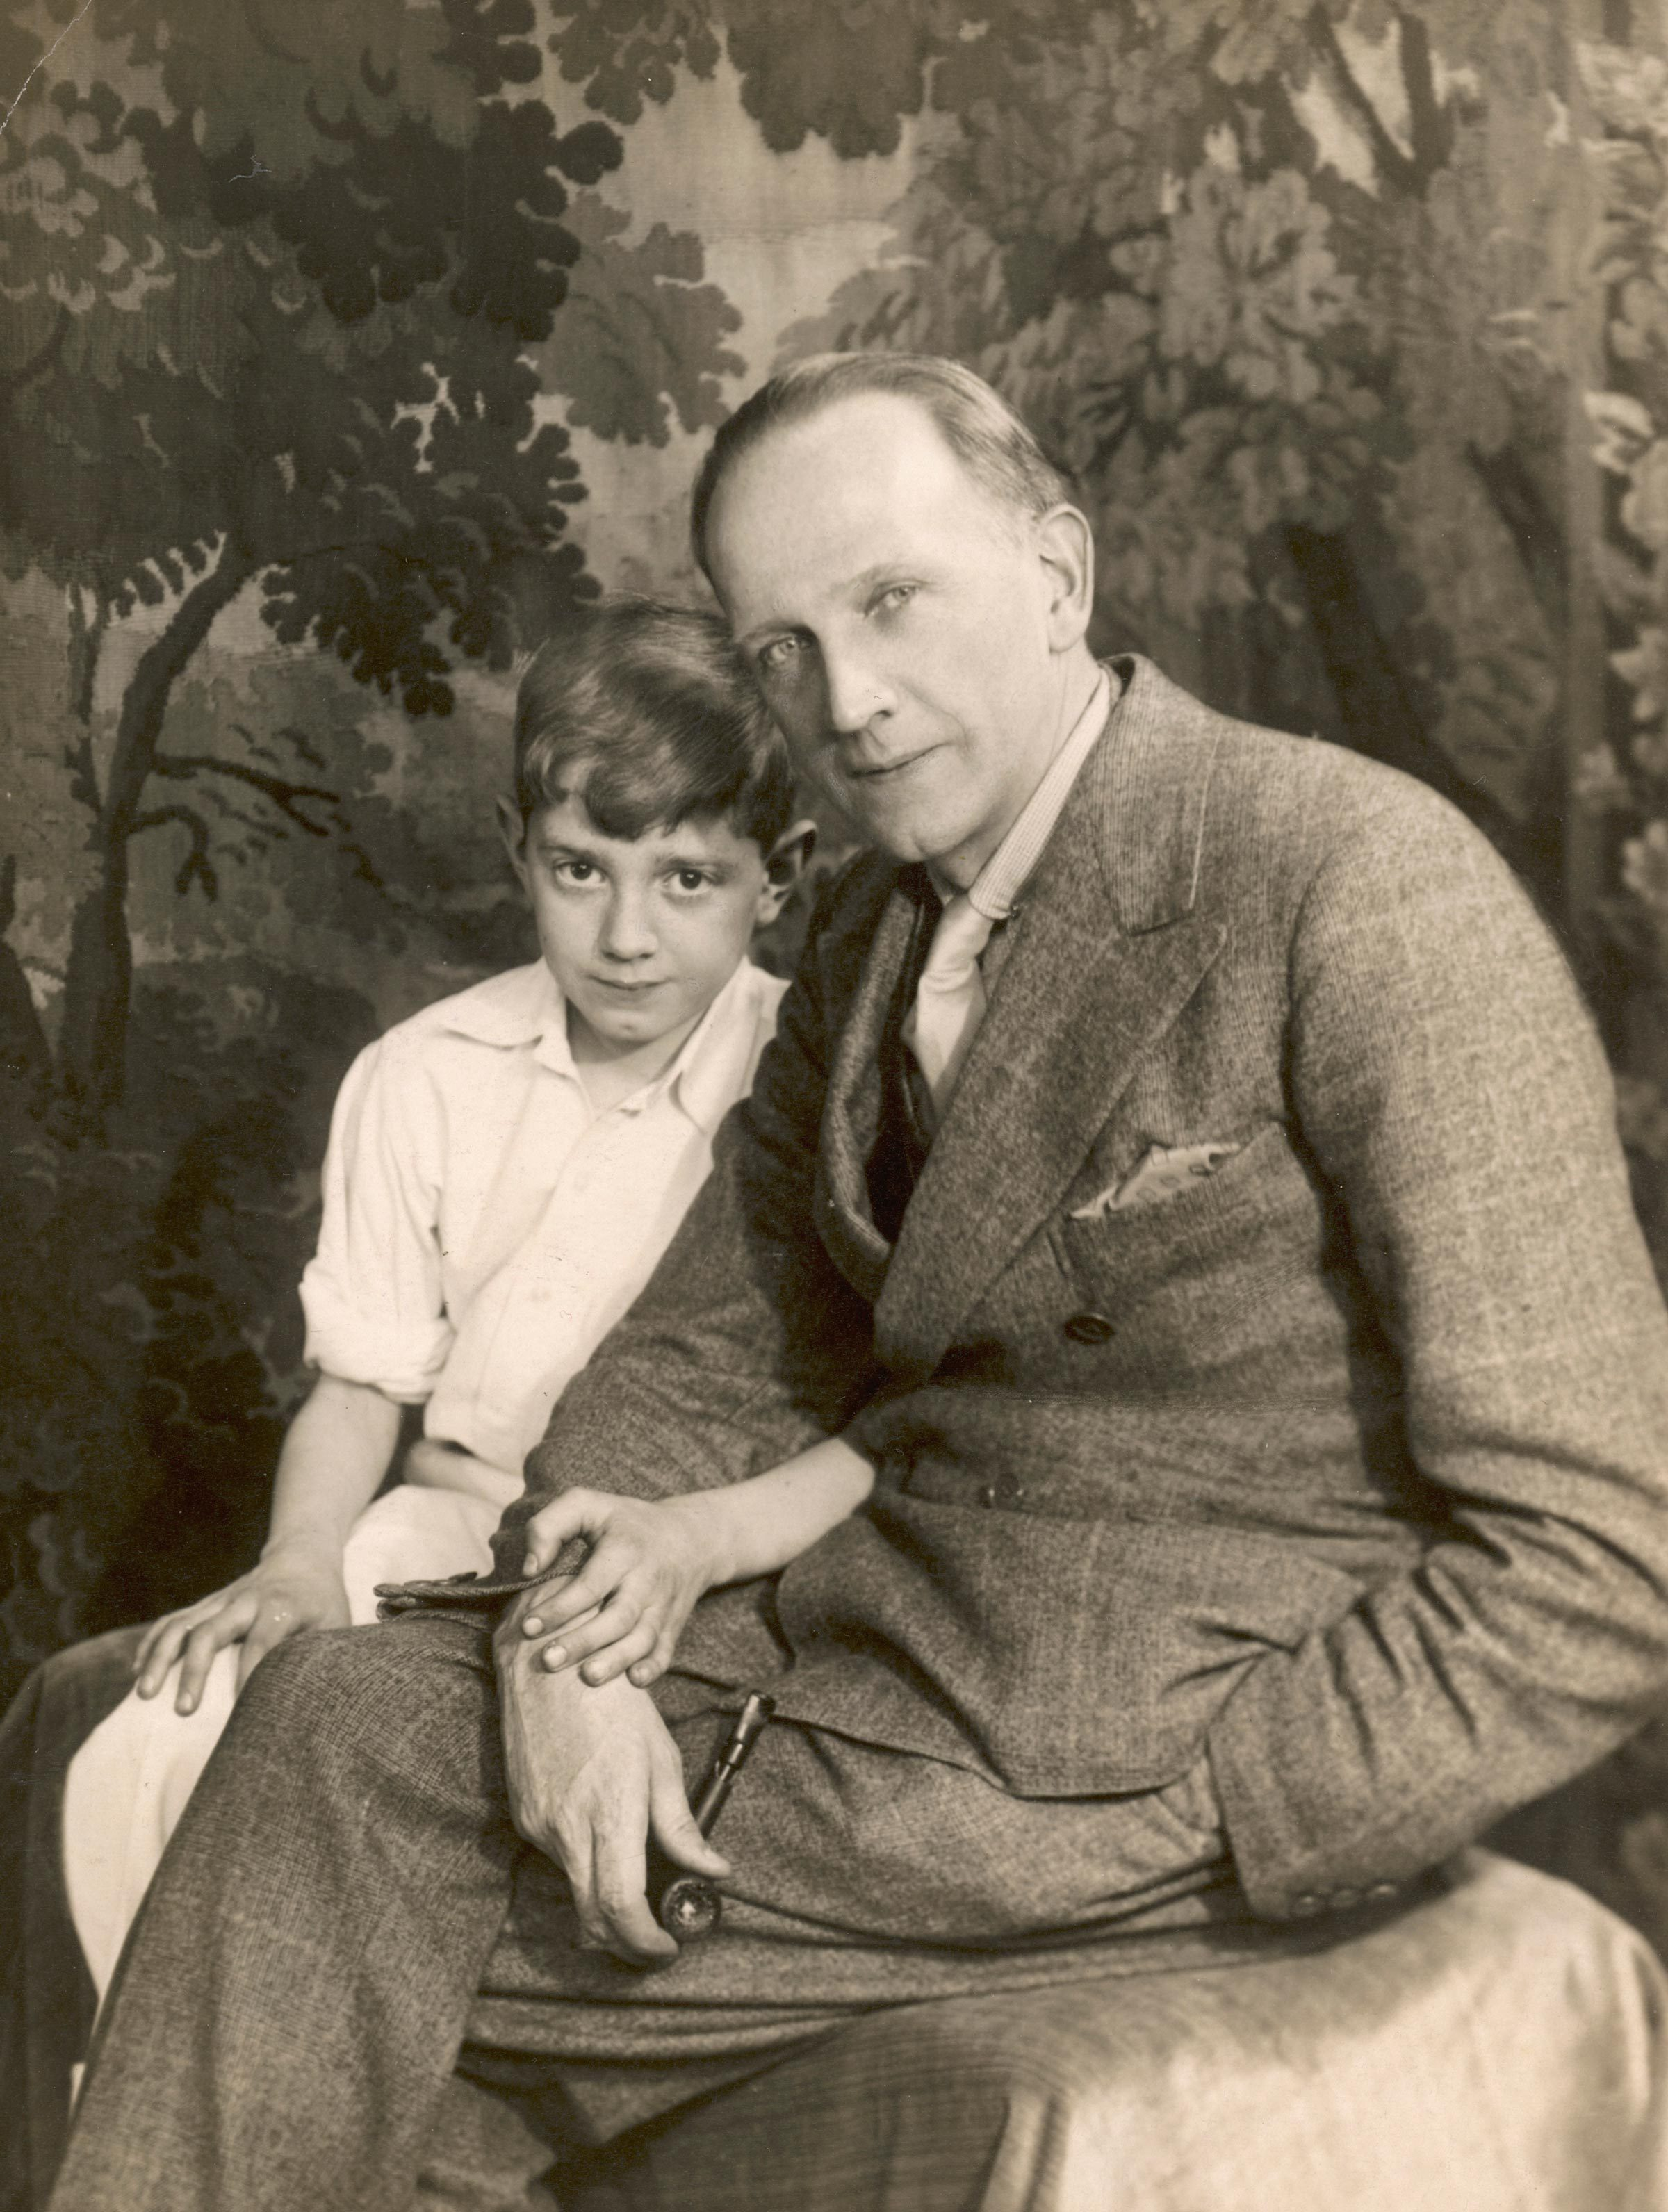 Alan Alexander Milne (1882 - 1956) British Author and Playwright Pictured with His Son Christopher Robin Milne (1920 - 1996) the Inspiration For His Famous Winnie the Pooh Books c.1932